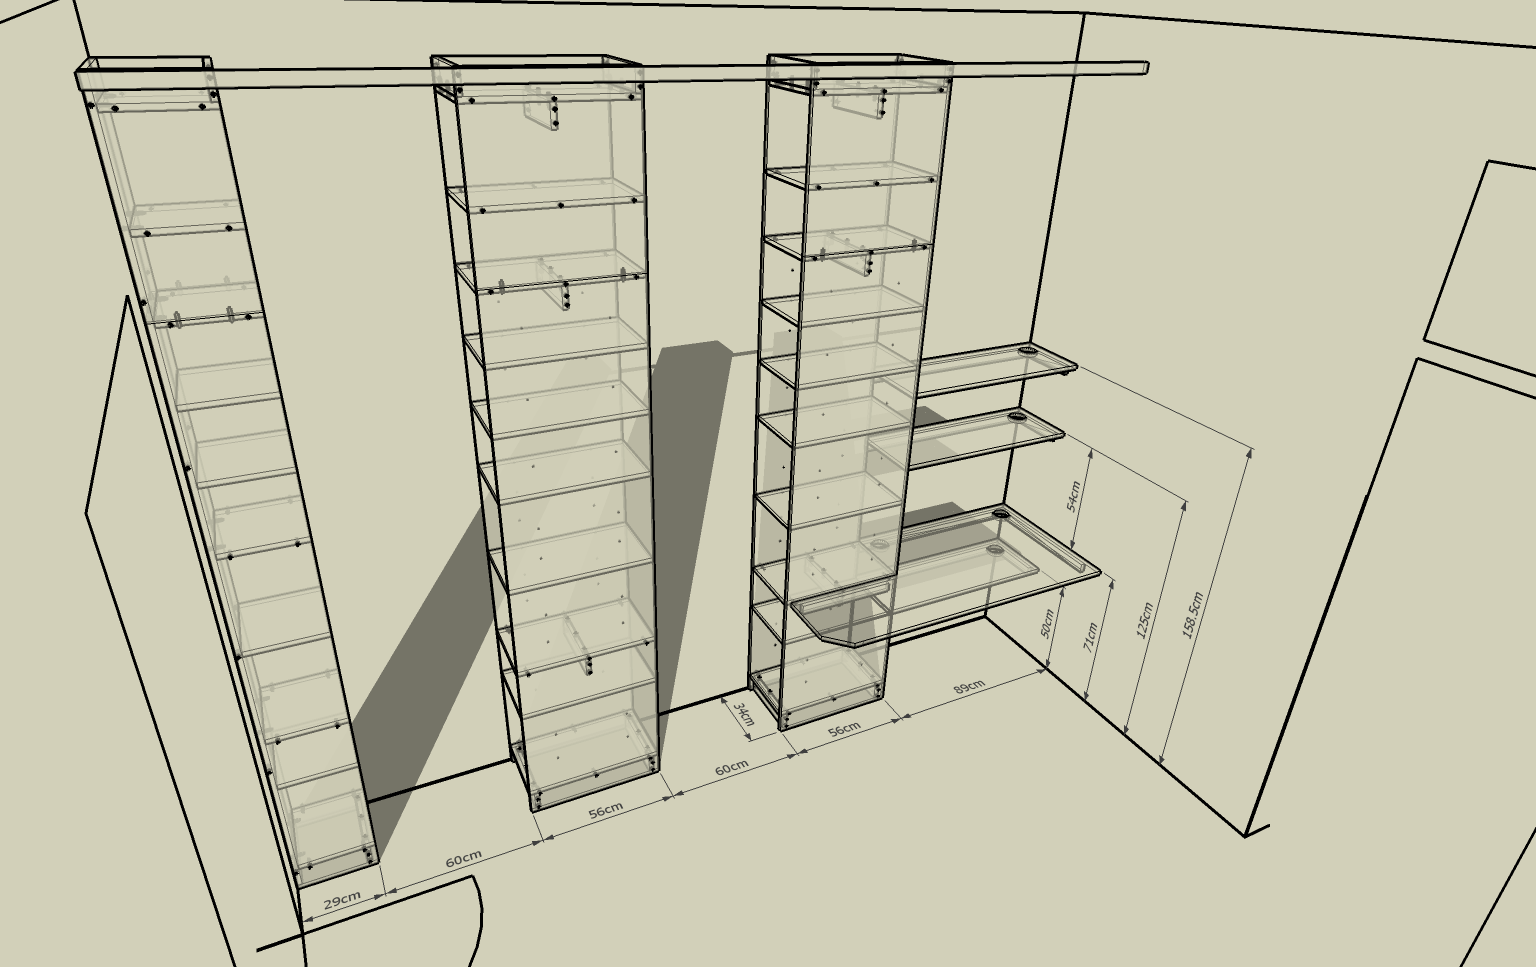 Using Google Sketchup To Test Room Layouts Catmaceys Stuff Etching Circuits At Home Geekdad The Shelves For Linving